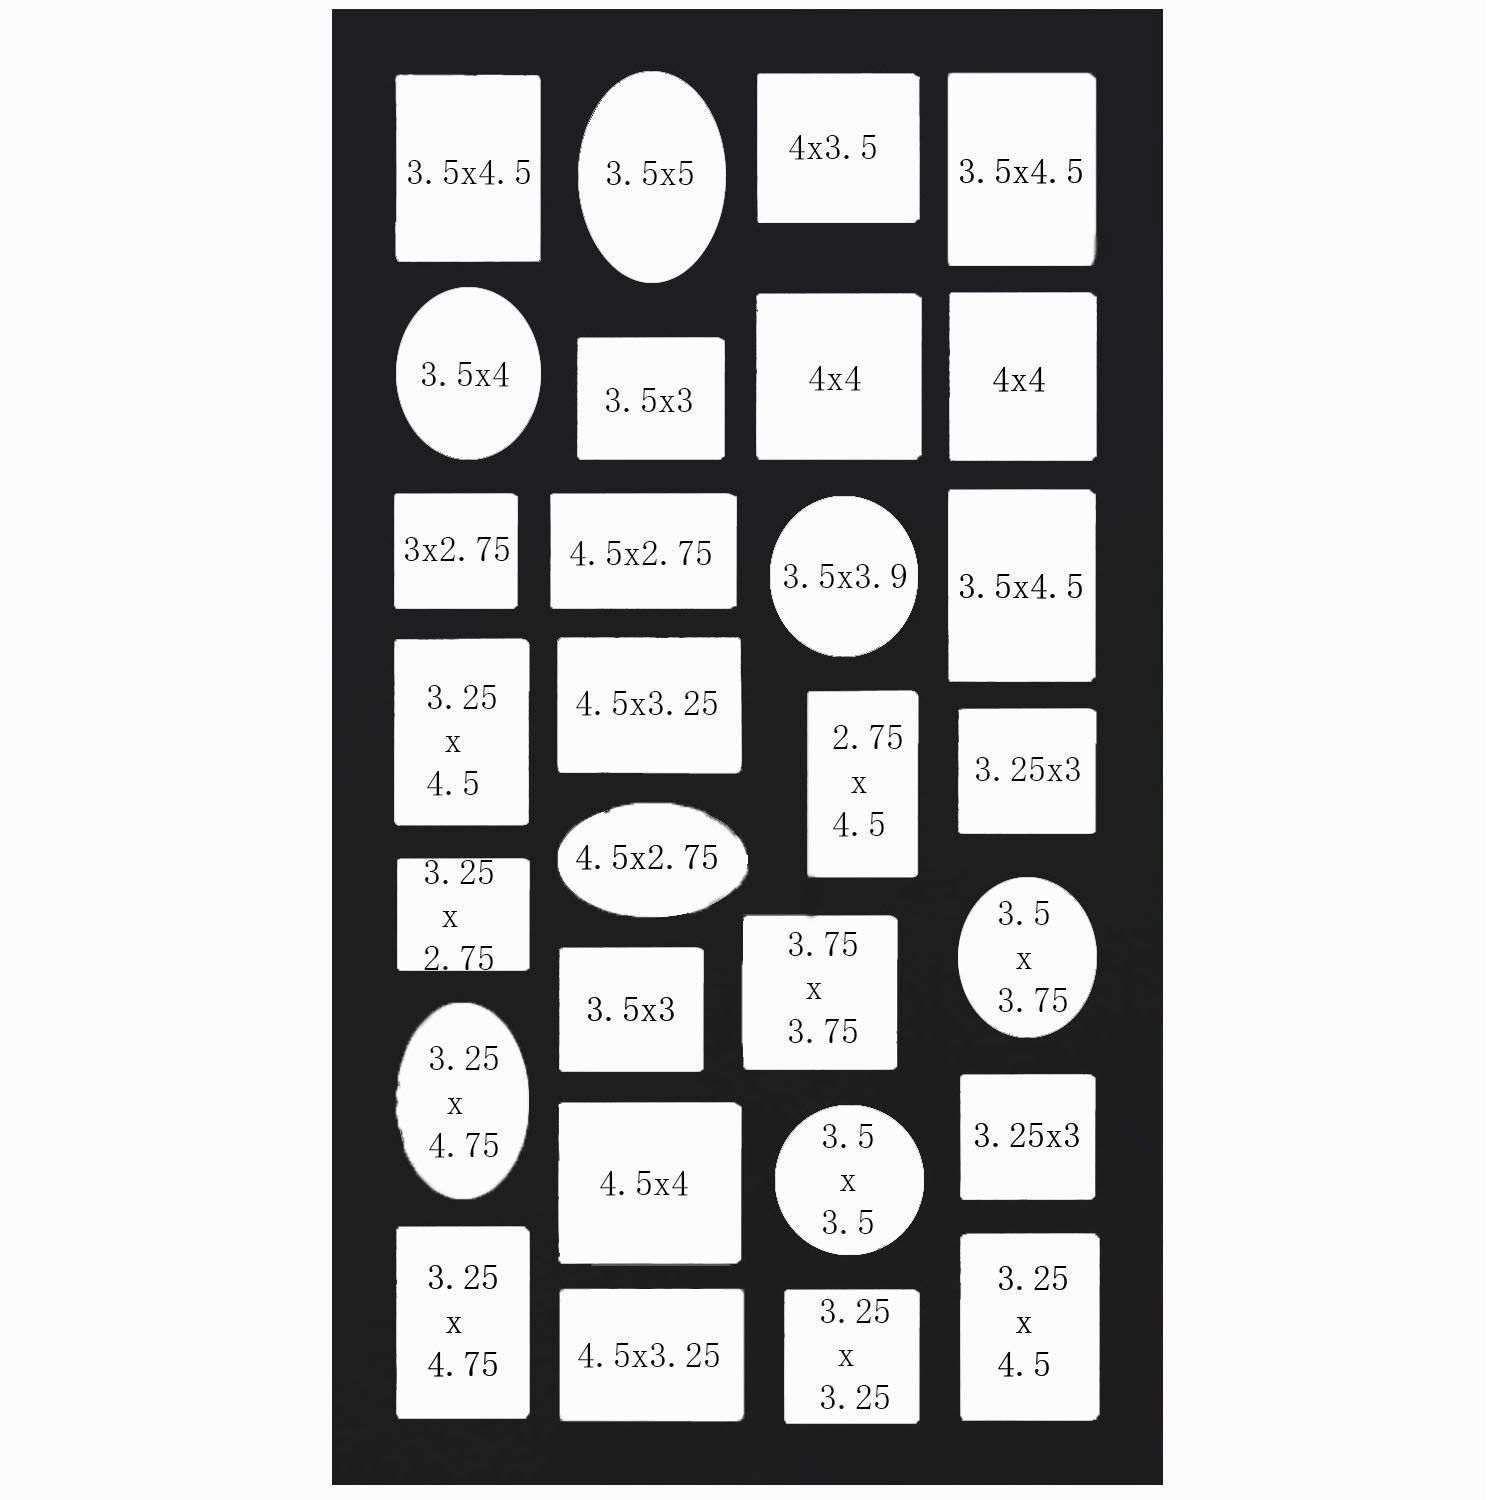 Adeco pf9105 decorative black wood wall hanging collage